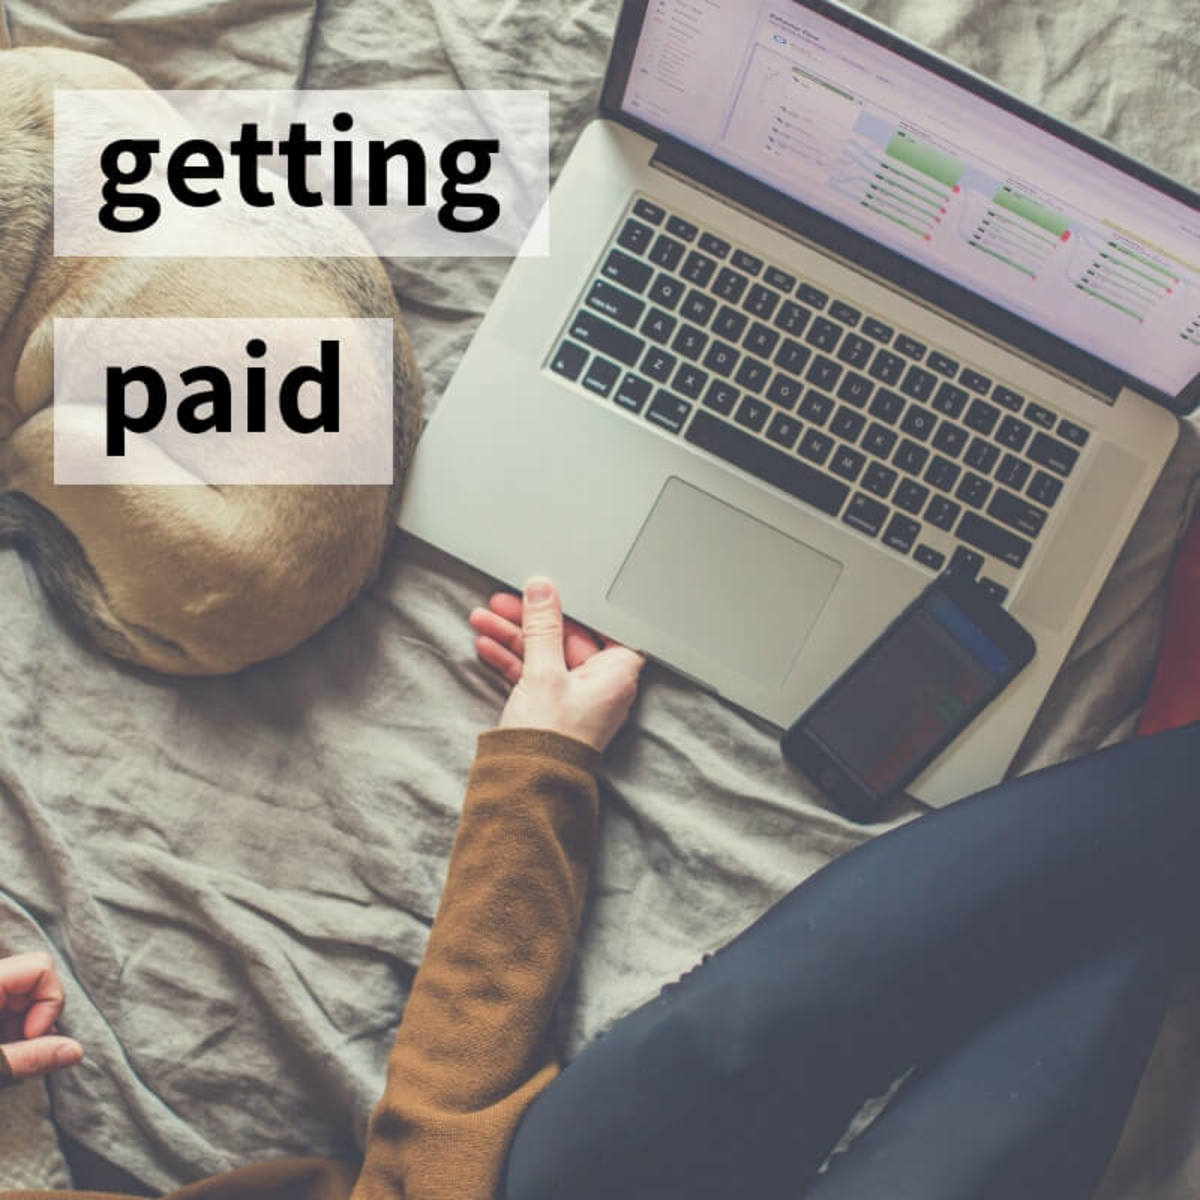 Can you imagine blogging and not having a PayPal set up?